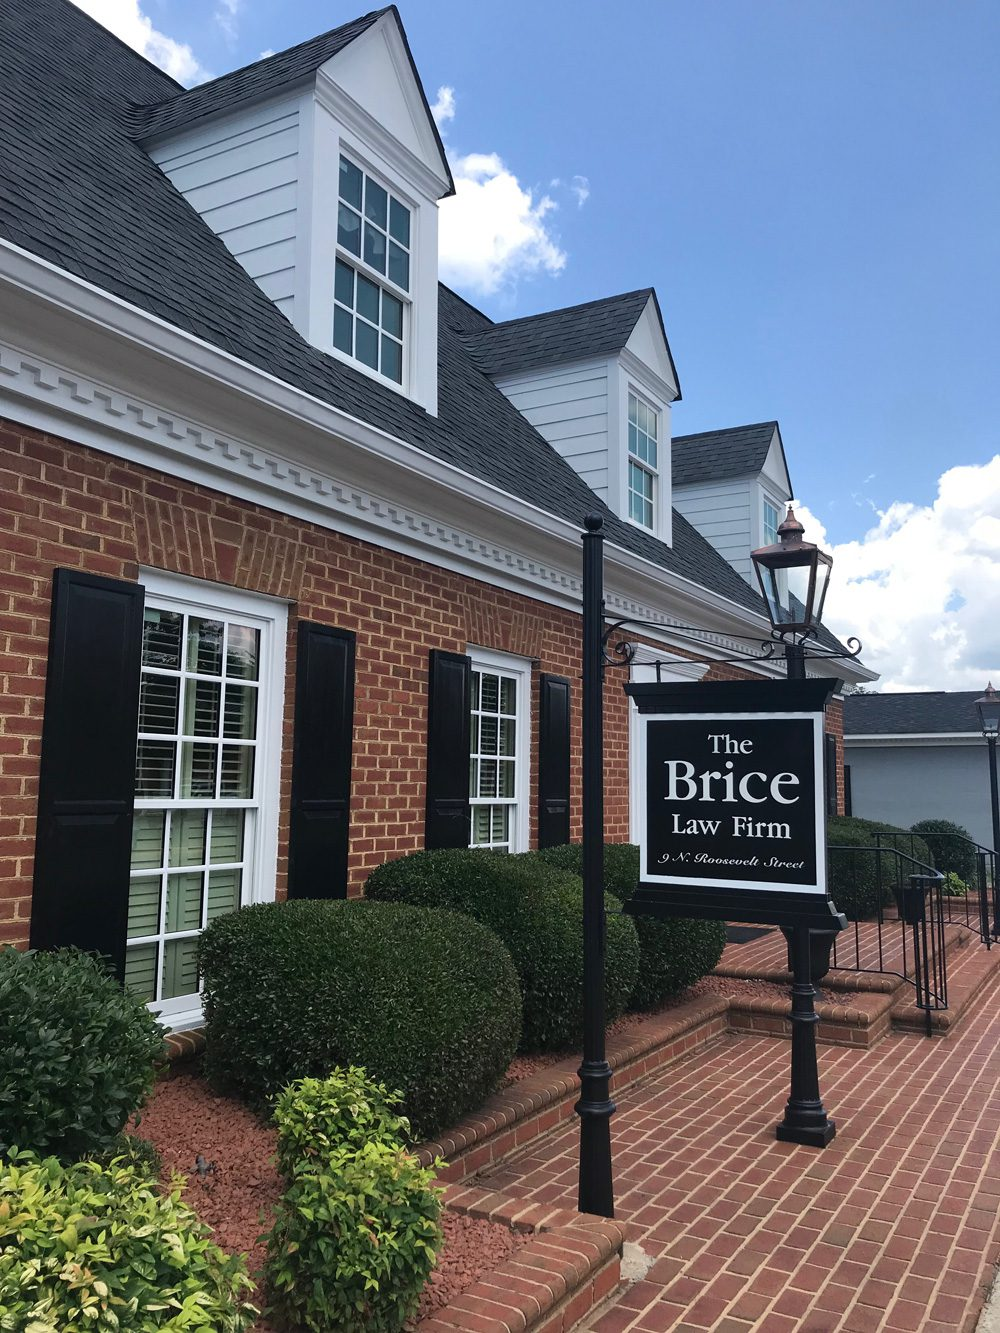 The Brice Law Firm   York, SC   large residential home